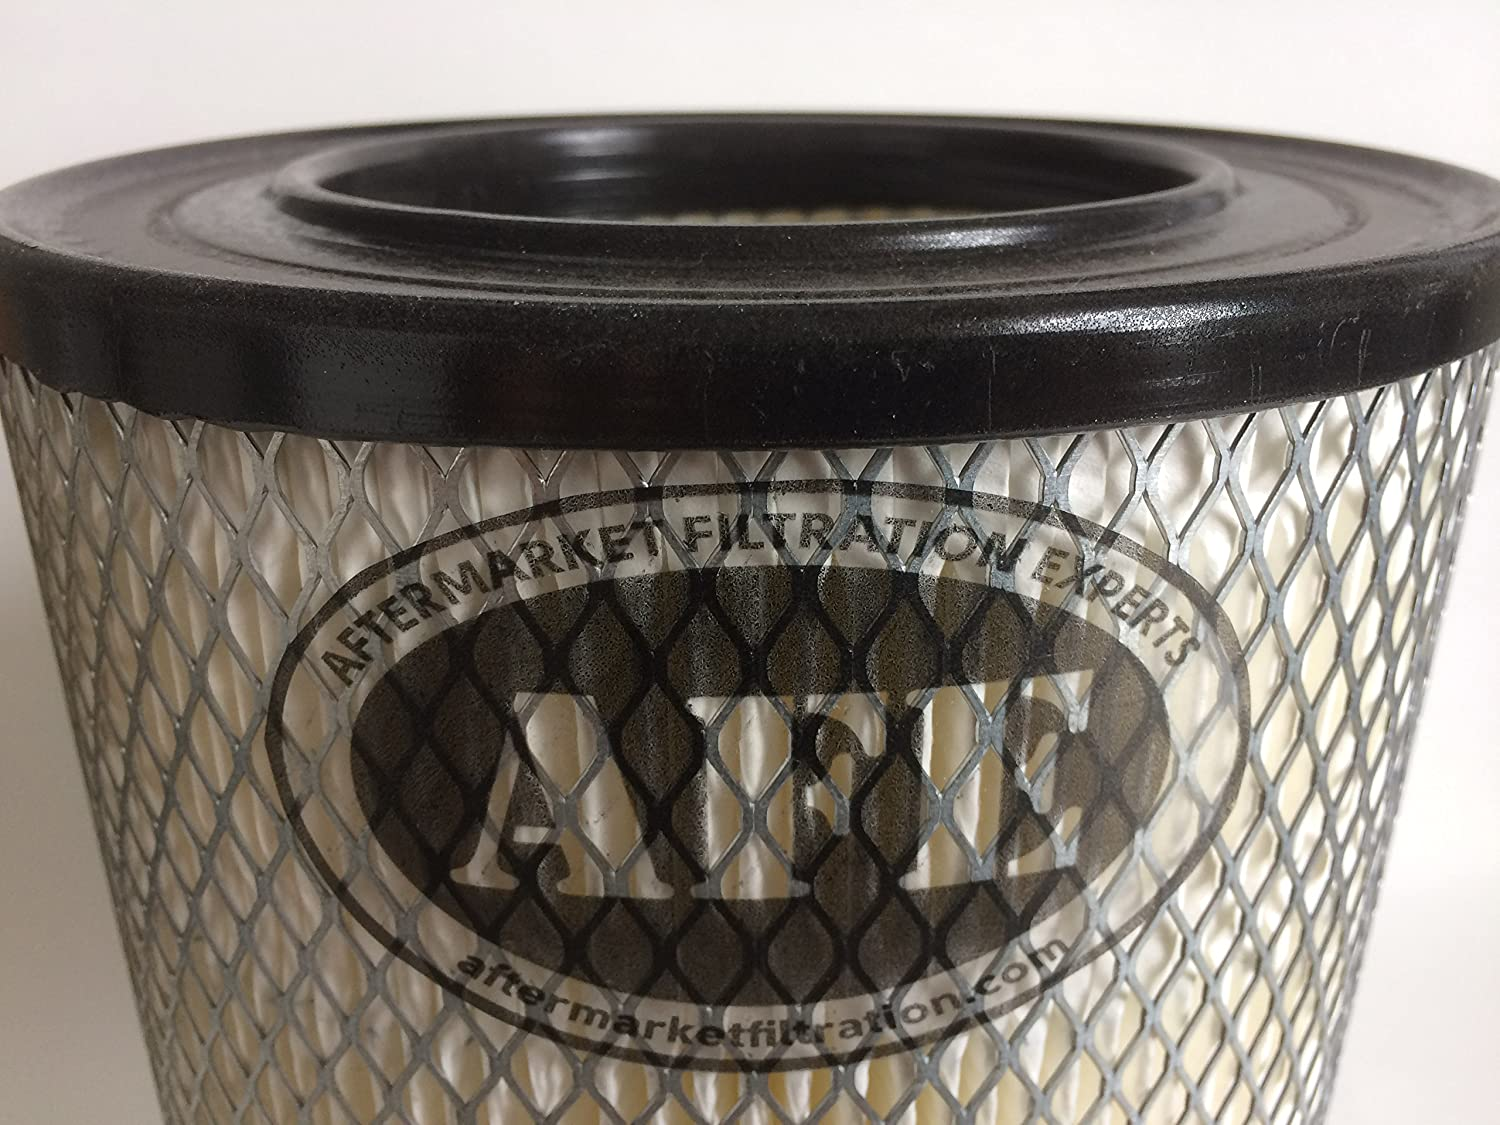 Qty 1 Afe 88438 Carquest Direct Replacement Air Filter Alliance Fuel Water Separator Industrial Scientific